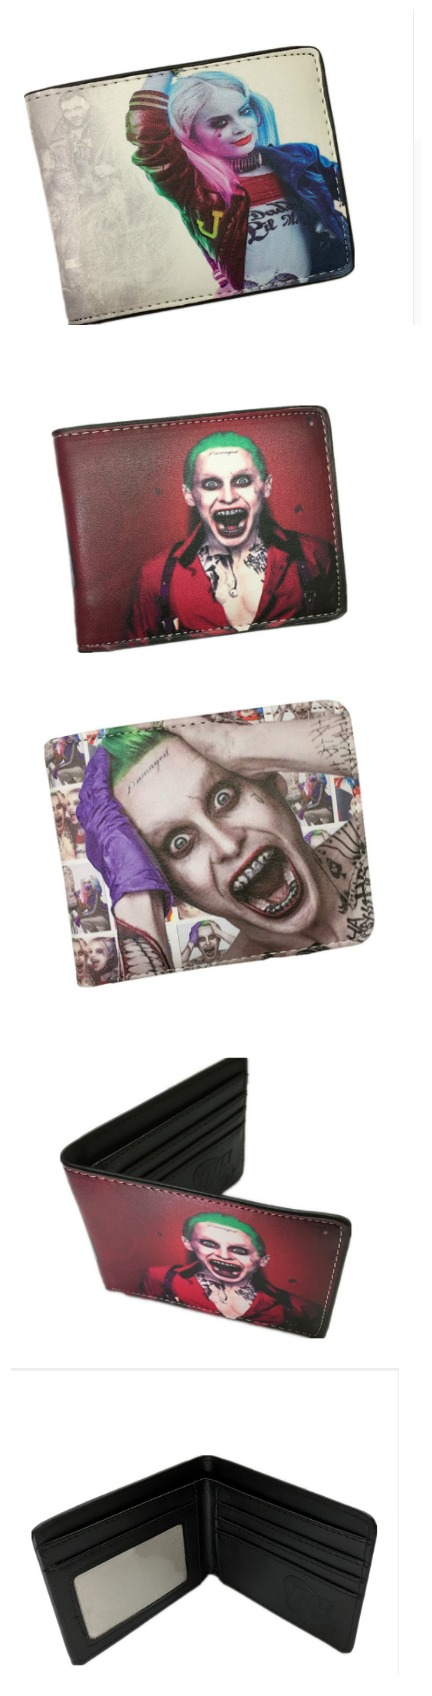 Suicide Squad Wallet! Click The Image To Buy It Now or Tag Someone You Want To Buy This For. #SuicideSquad